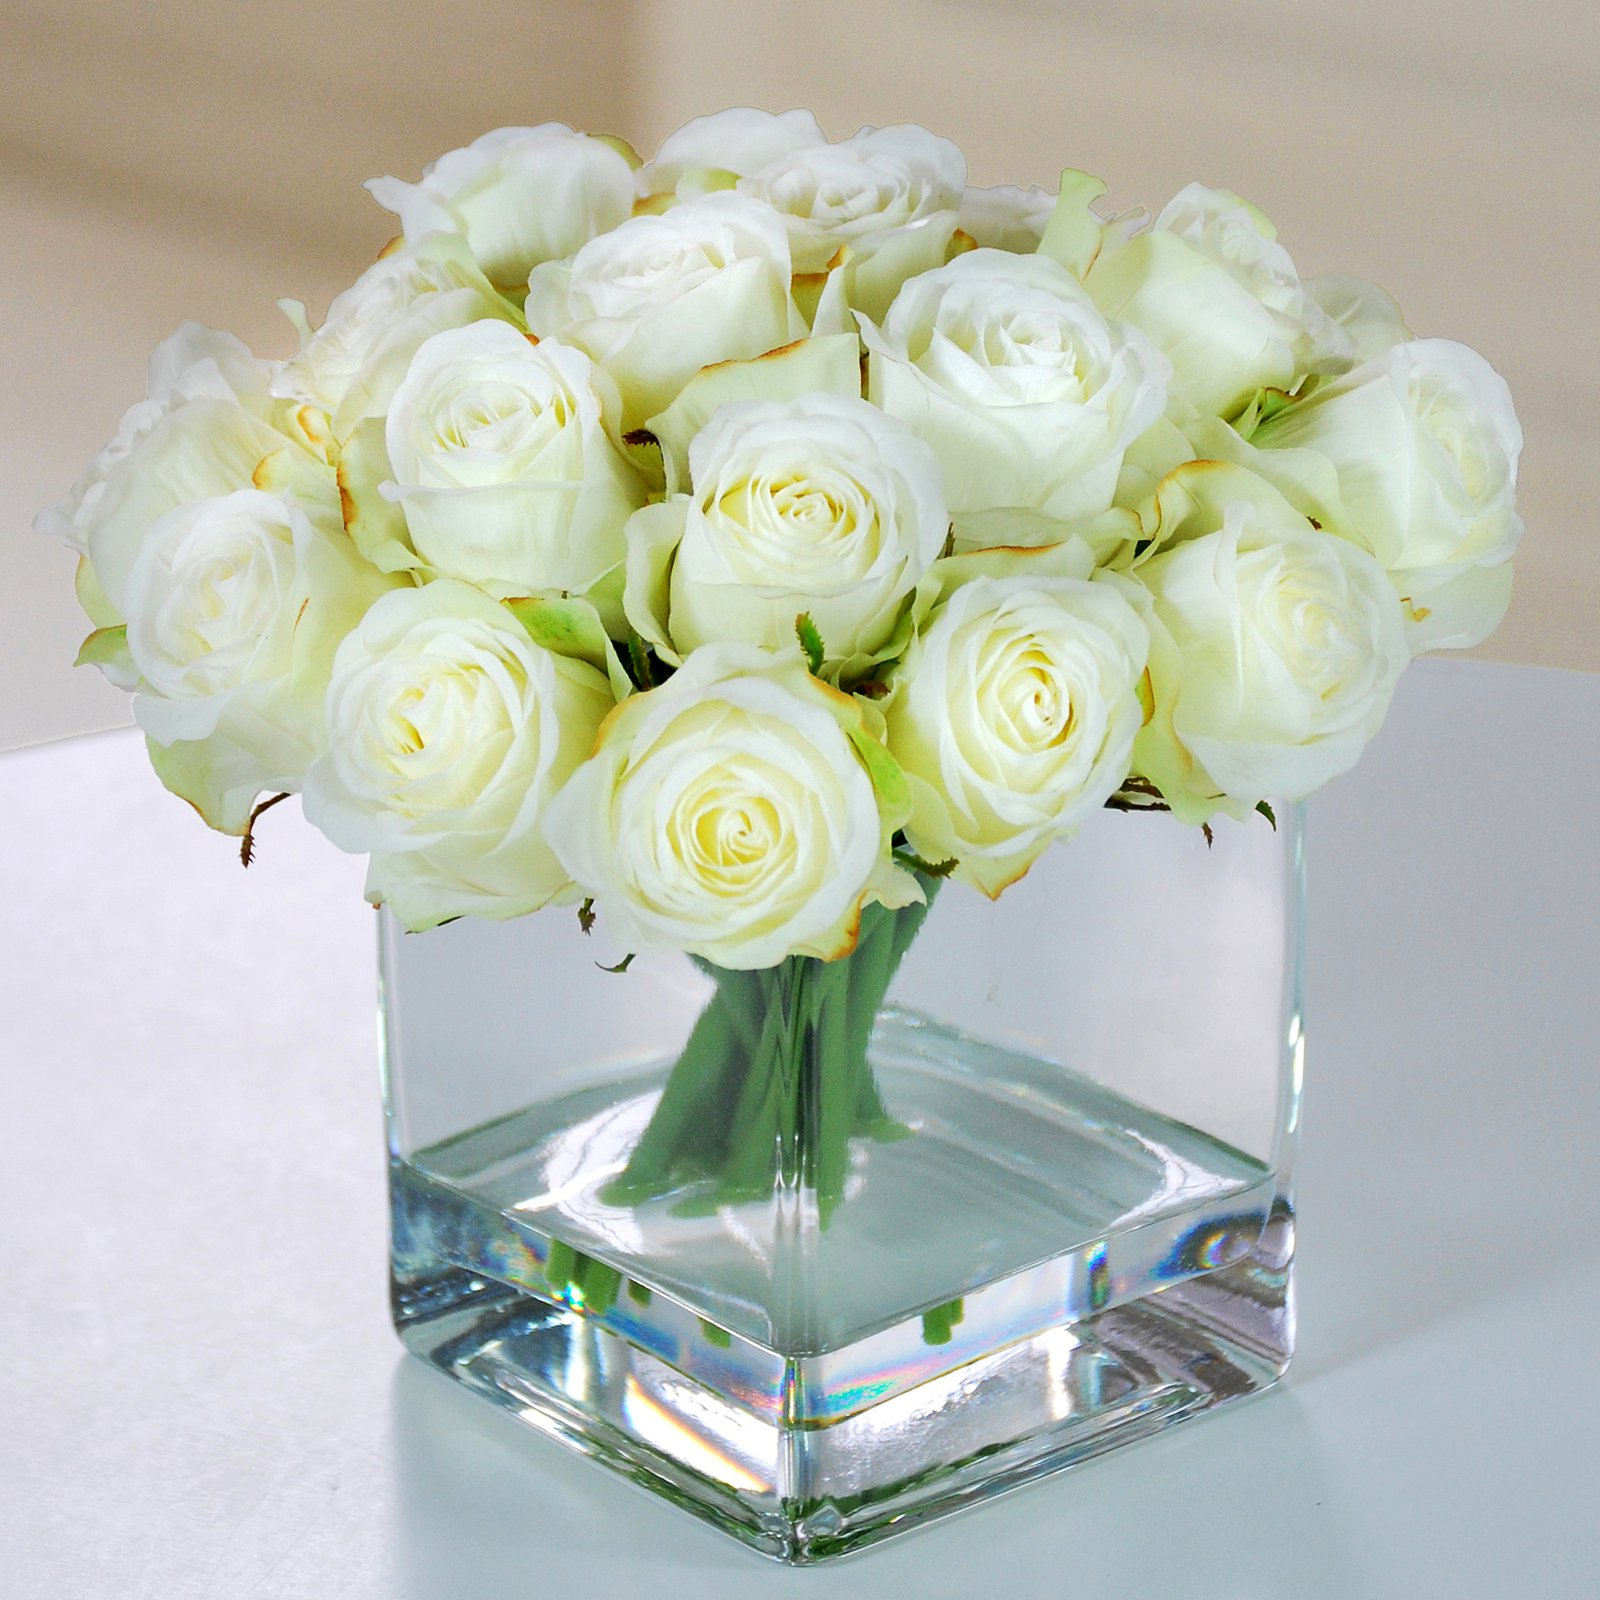 Jane Seymour Botanicals 9 in. Rose Buds in Square Glass V...